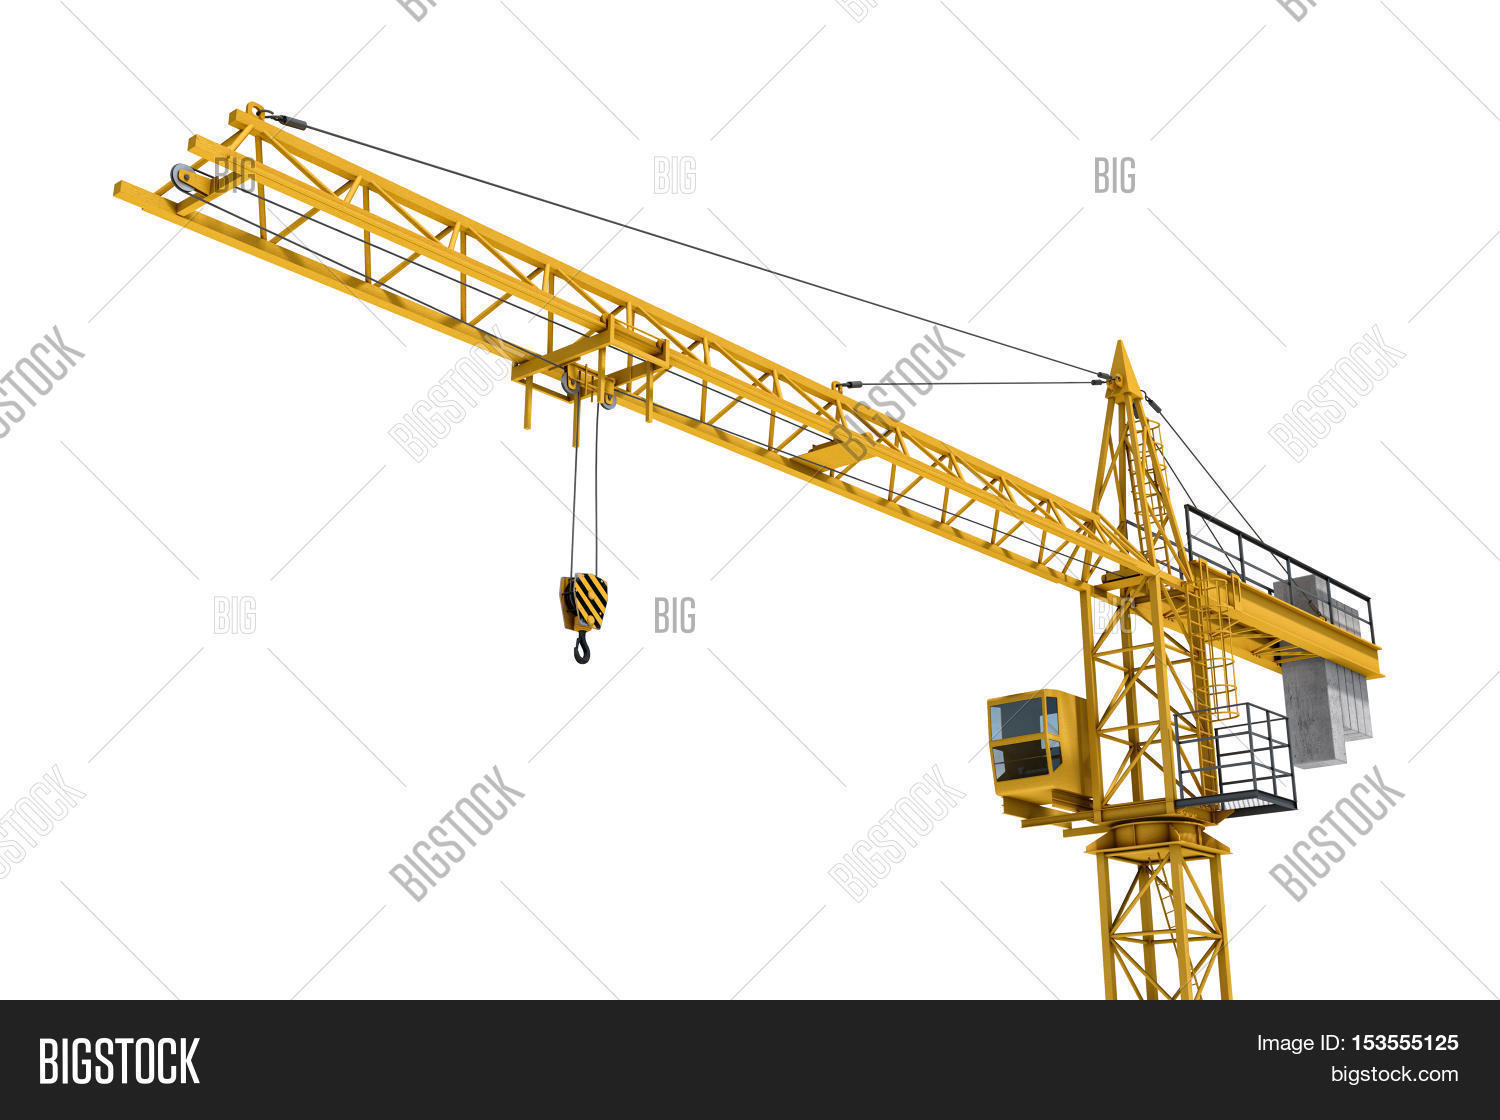 hight resolution of 3d rendering of a yellow construction crane isolated on a white background construction tower